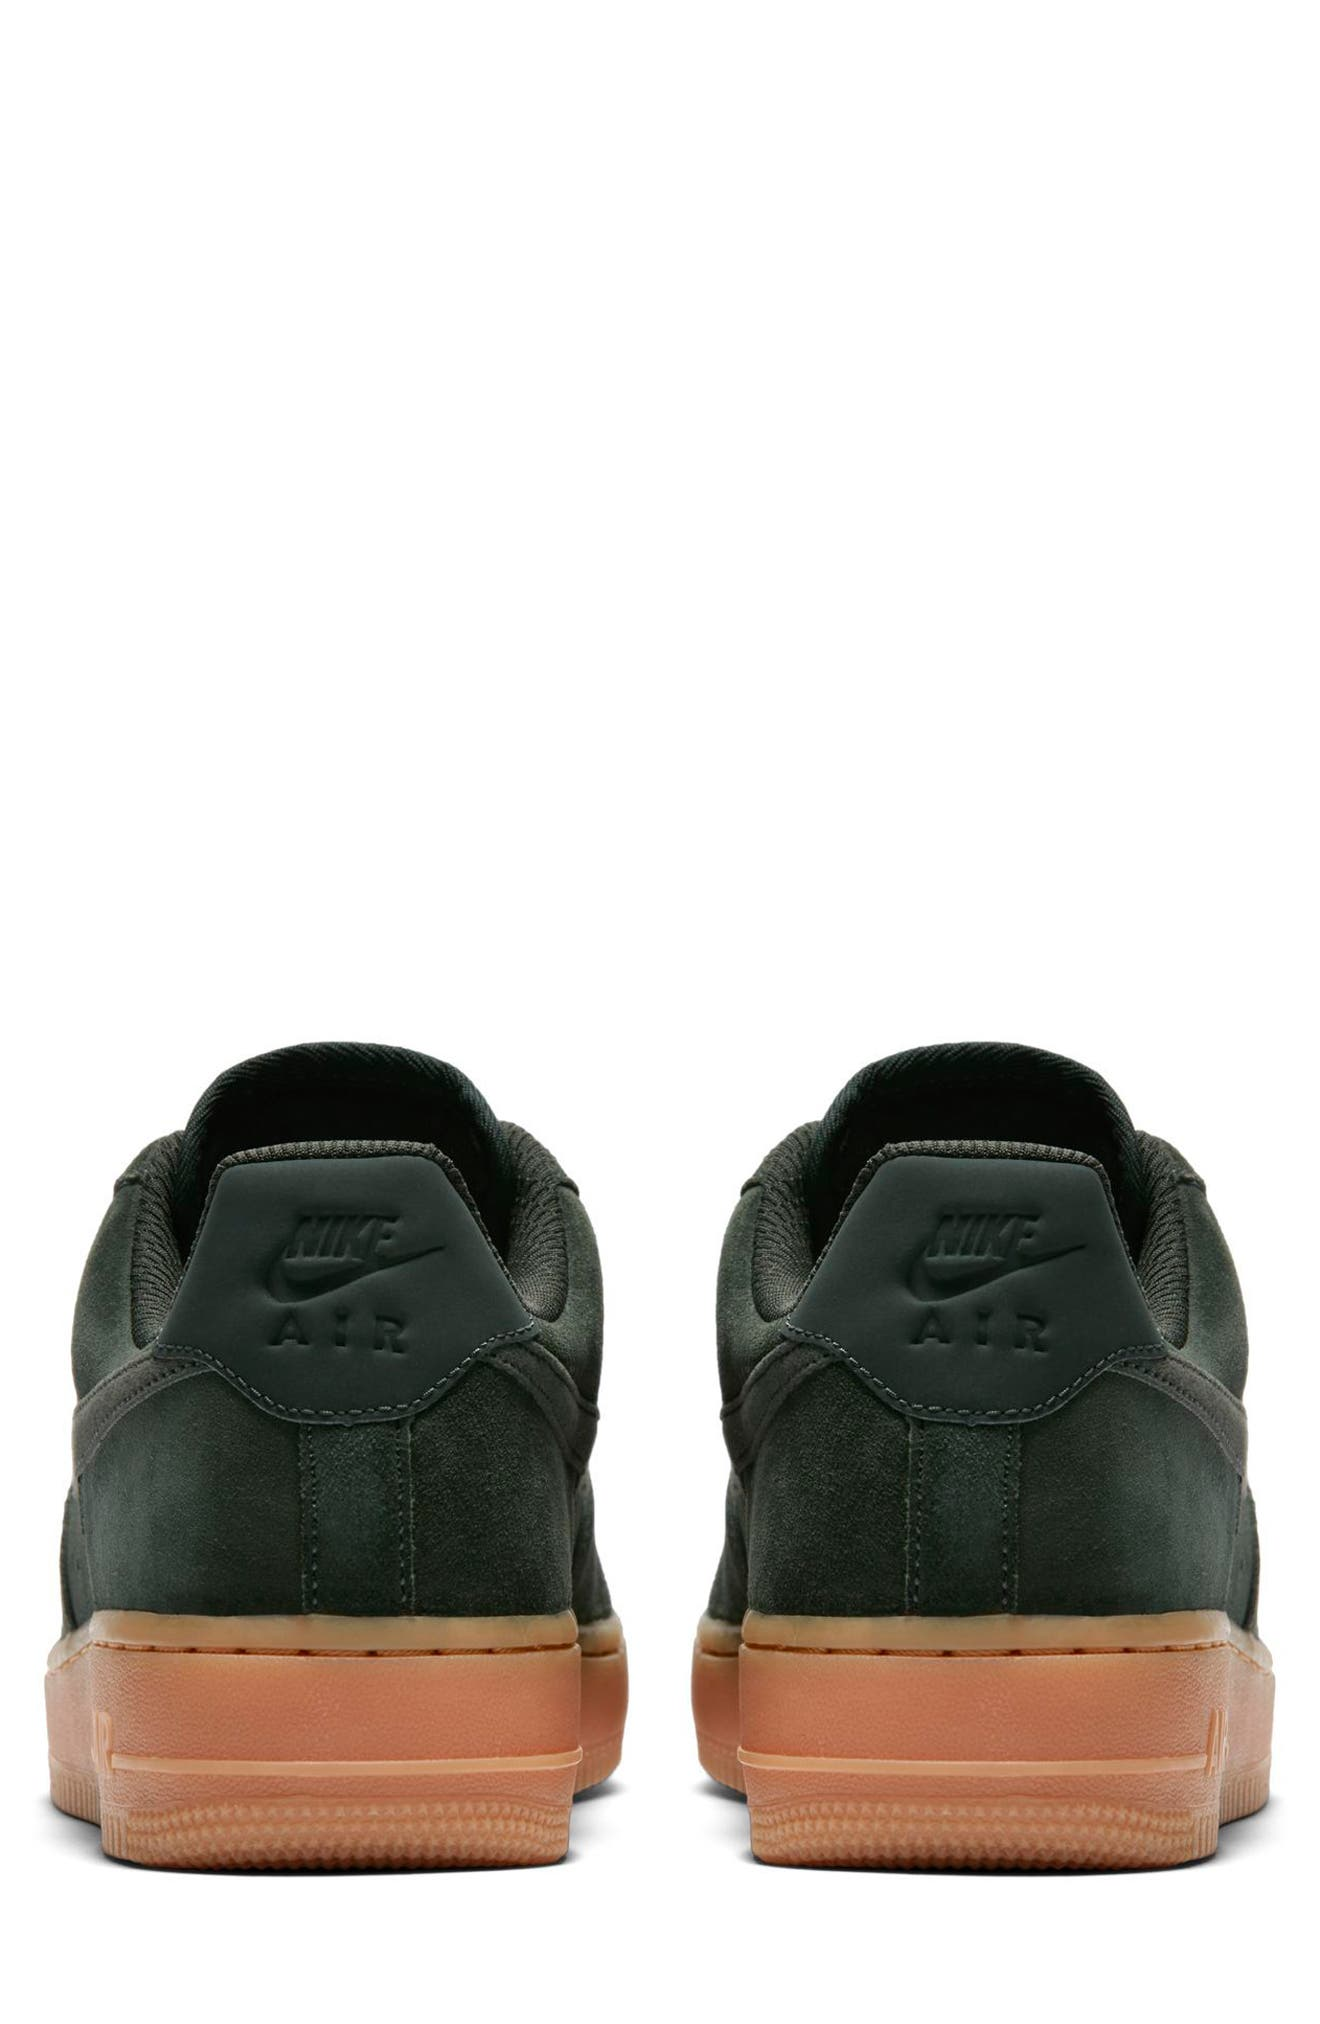 Air Force 1 '07 SE Sneaker,                             Alternate thumbnail 4, color,                             Outdoor Green/ Outdoor Green